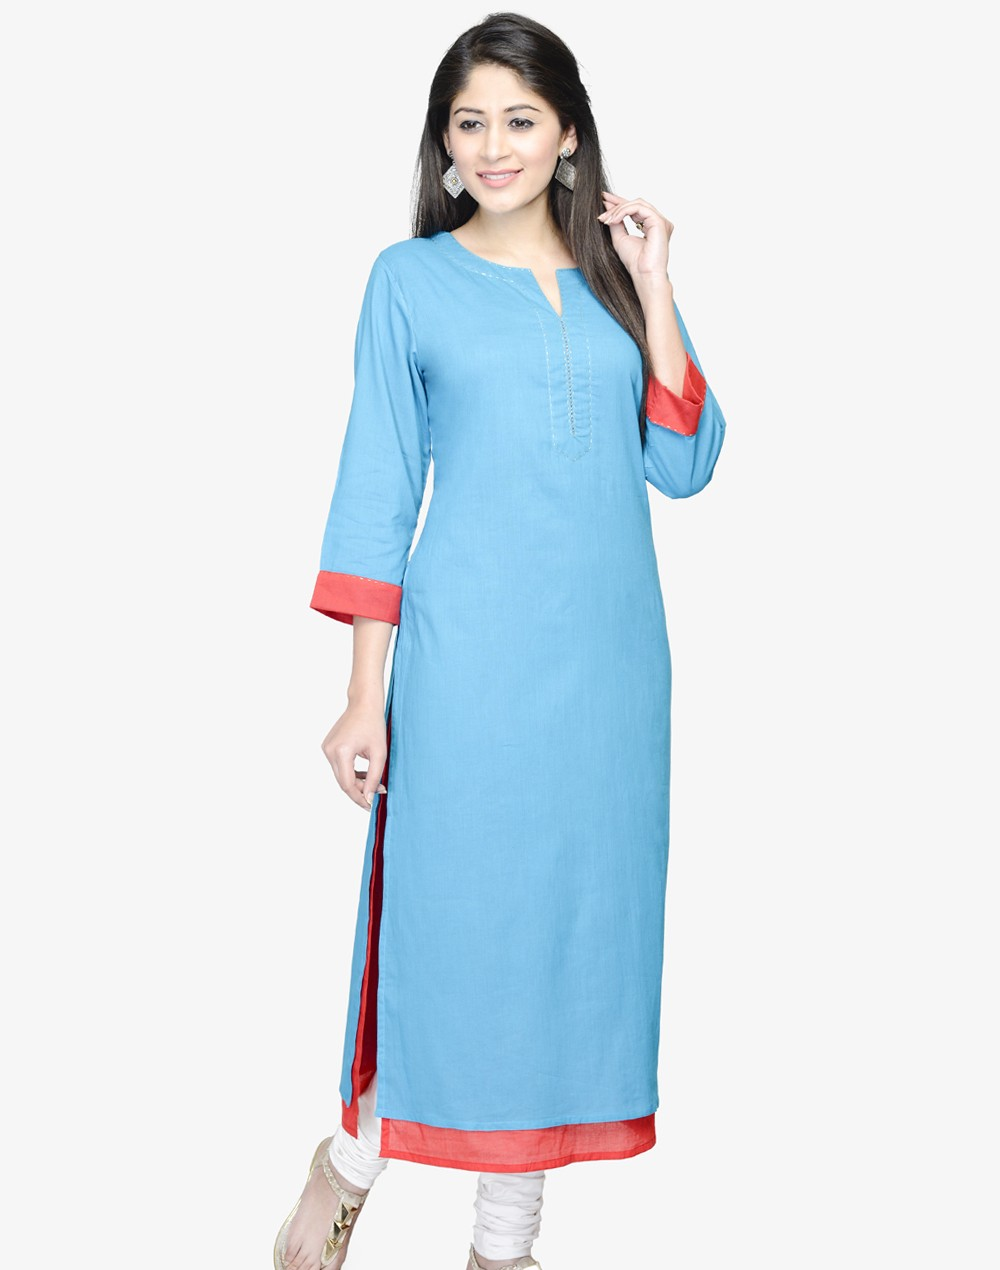 9607542978 High waist trousers or palazzos or dungri dress is a one the safe options  for short height ladies. Nice long, solid colors and good fitting lowers  till ...